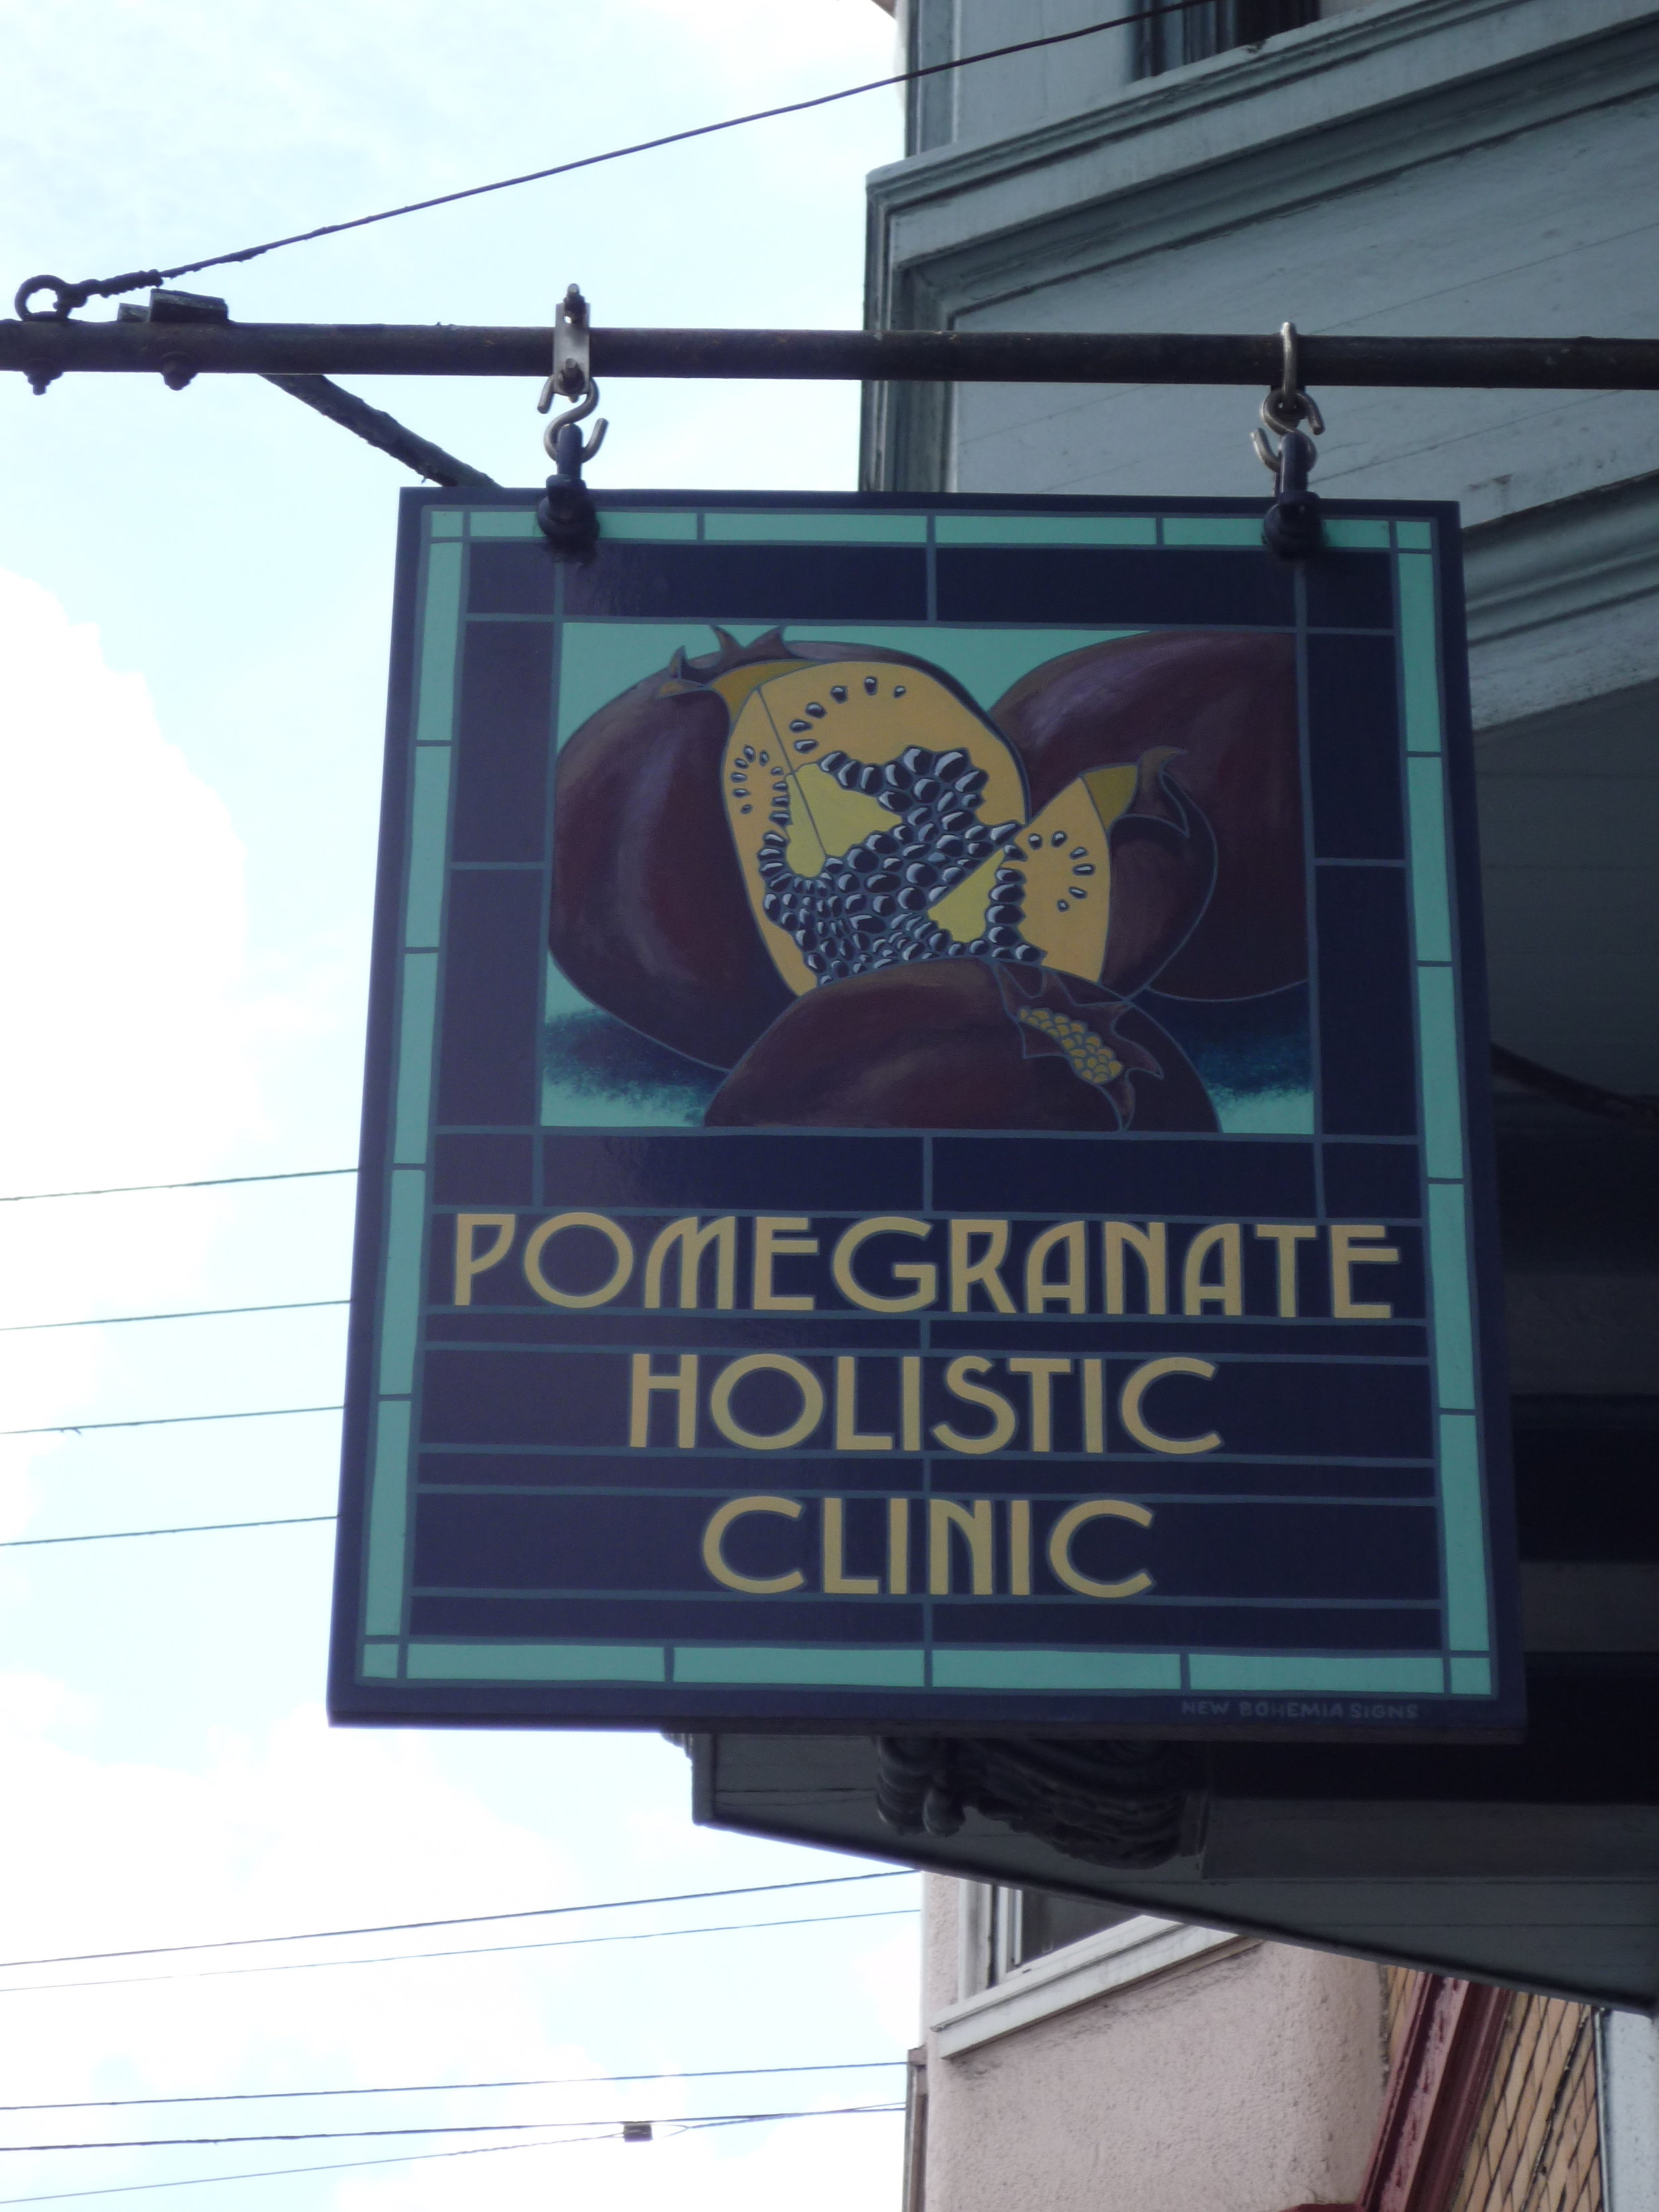 HAND-pomegranate-holistic-clinic_3329795634_o.jpg